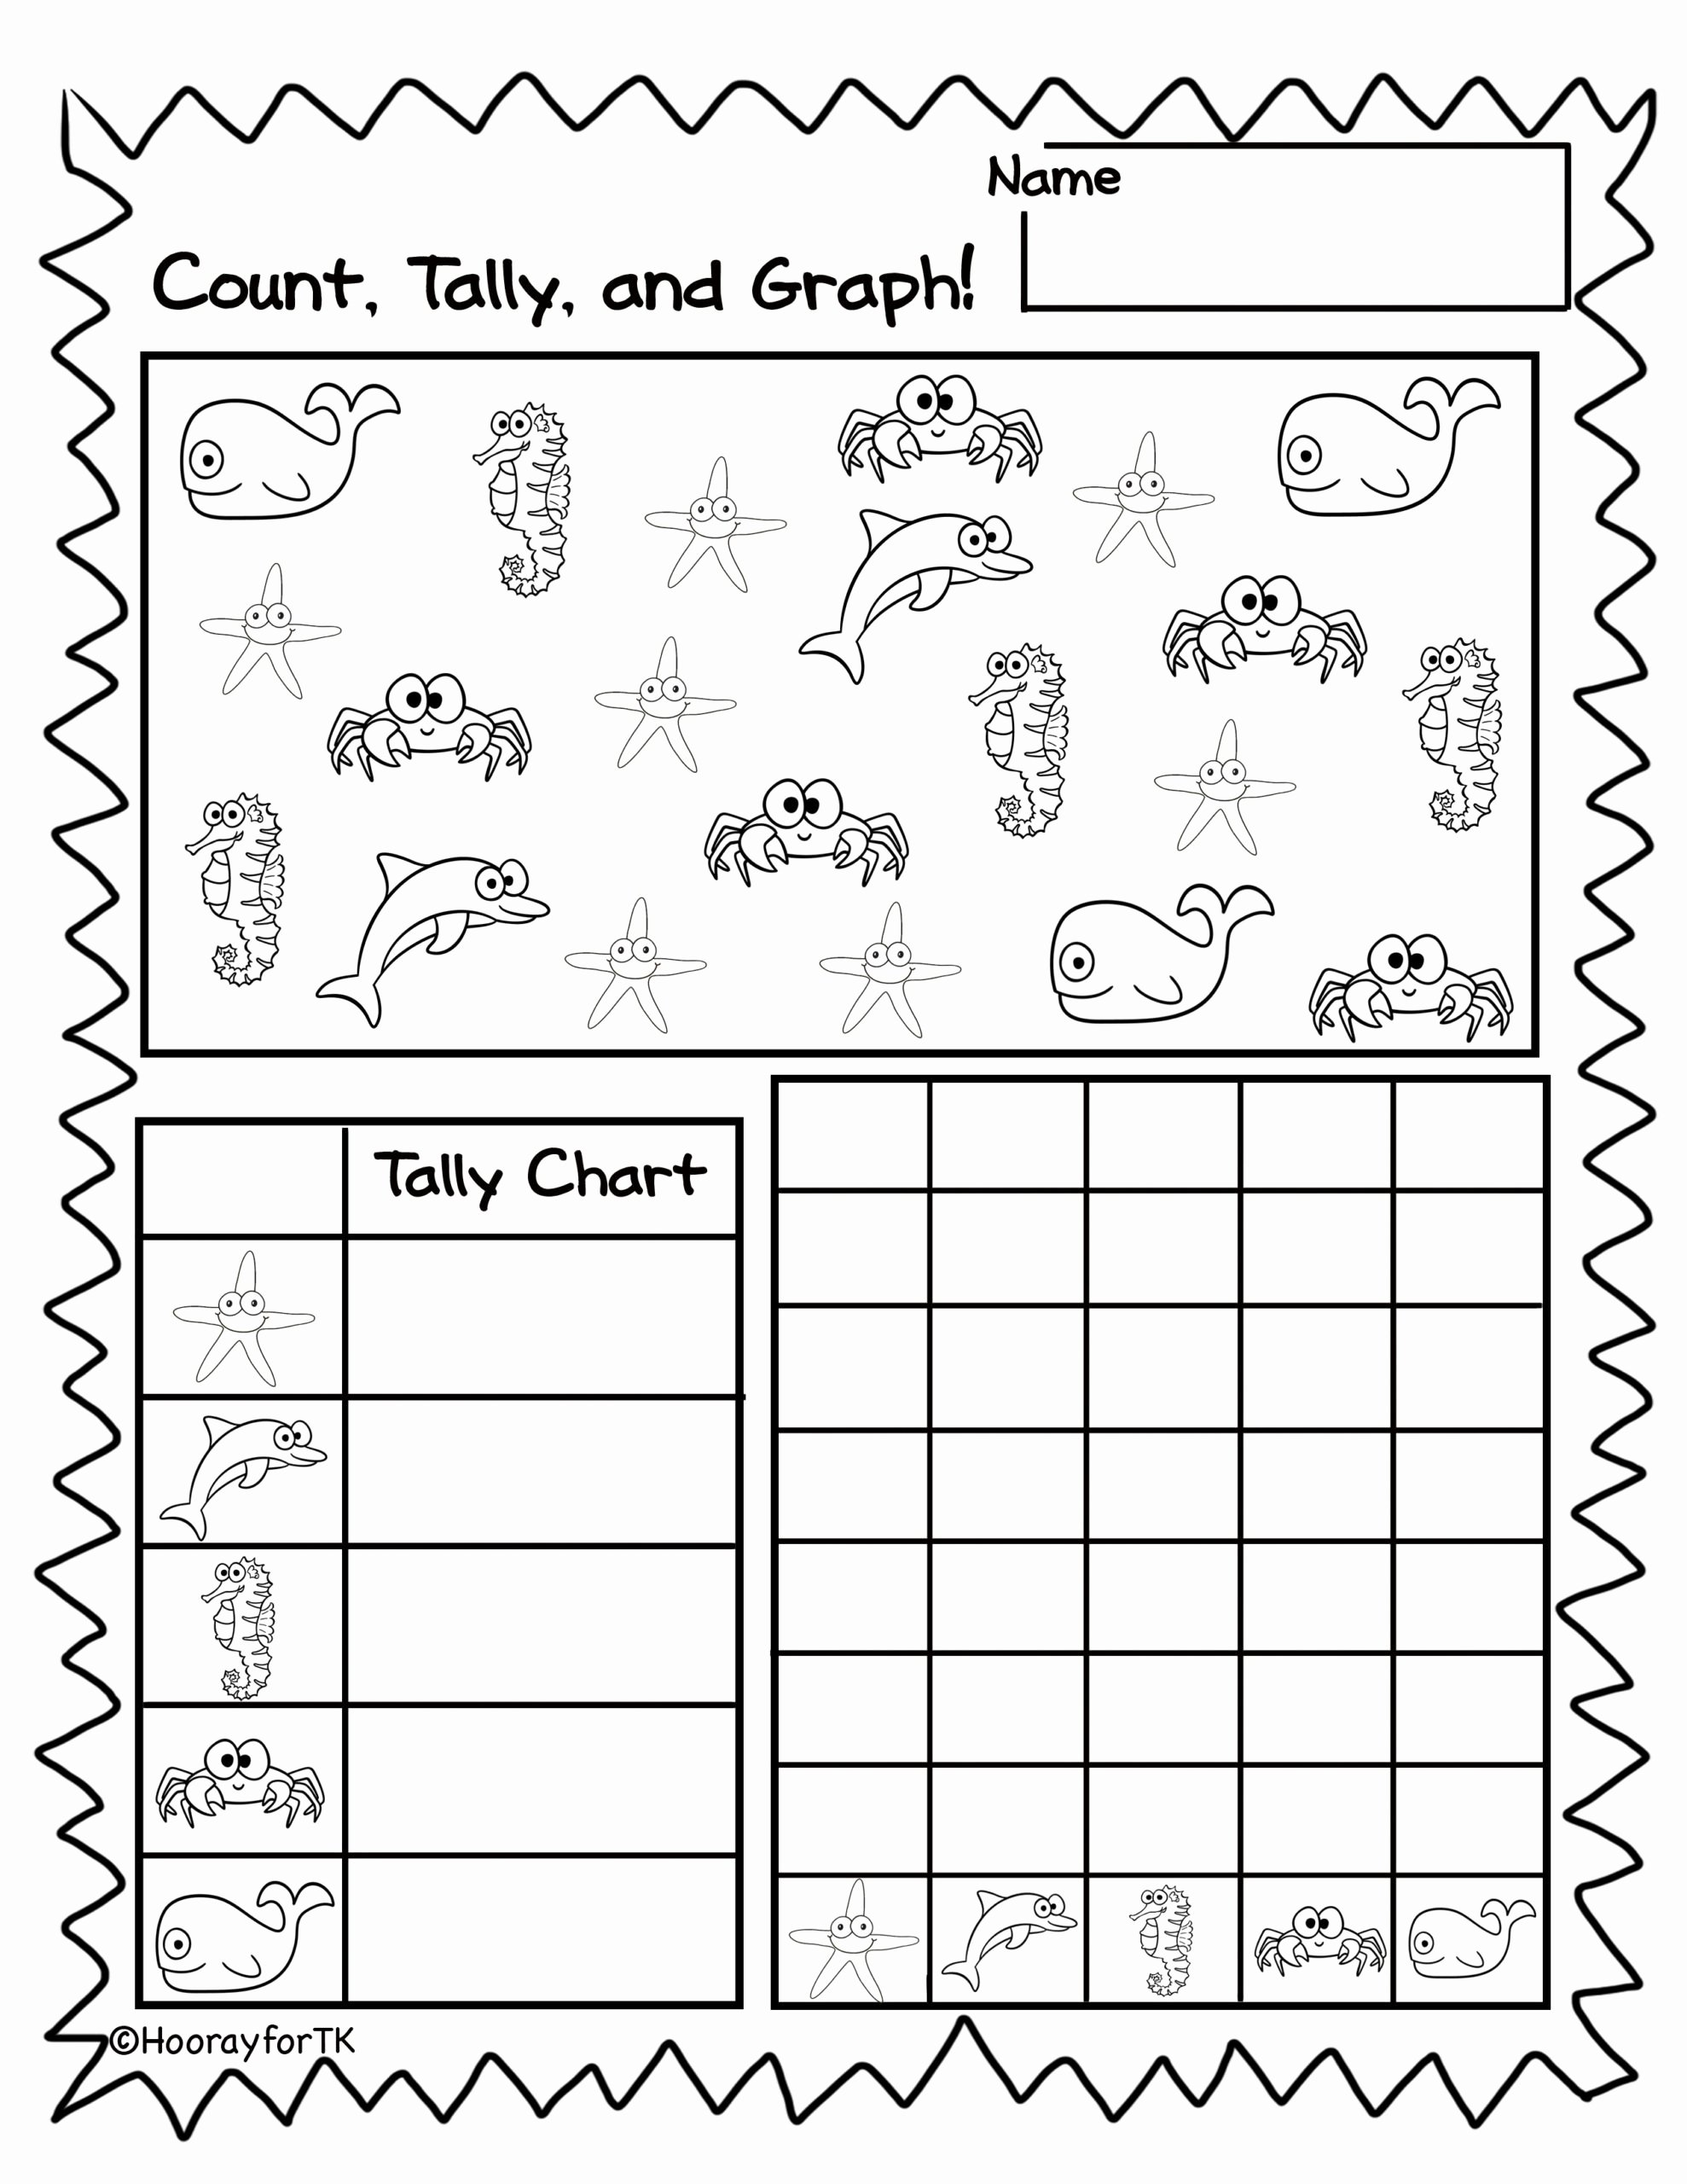 Weather Worksheets for Preschoolers Kids Kindergarten Free Printable Weather Worksheets for